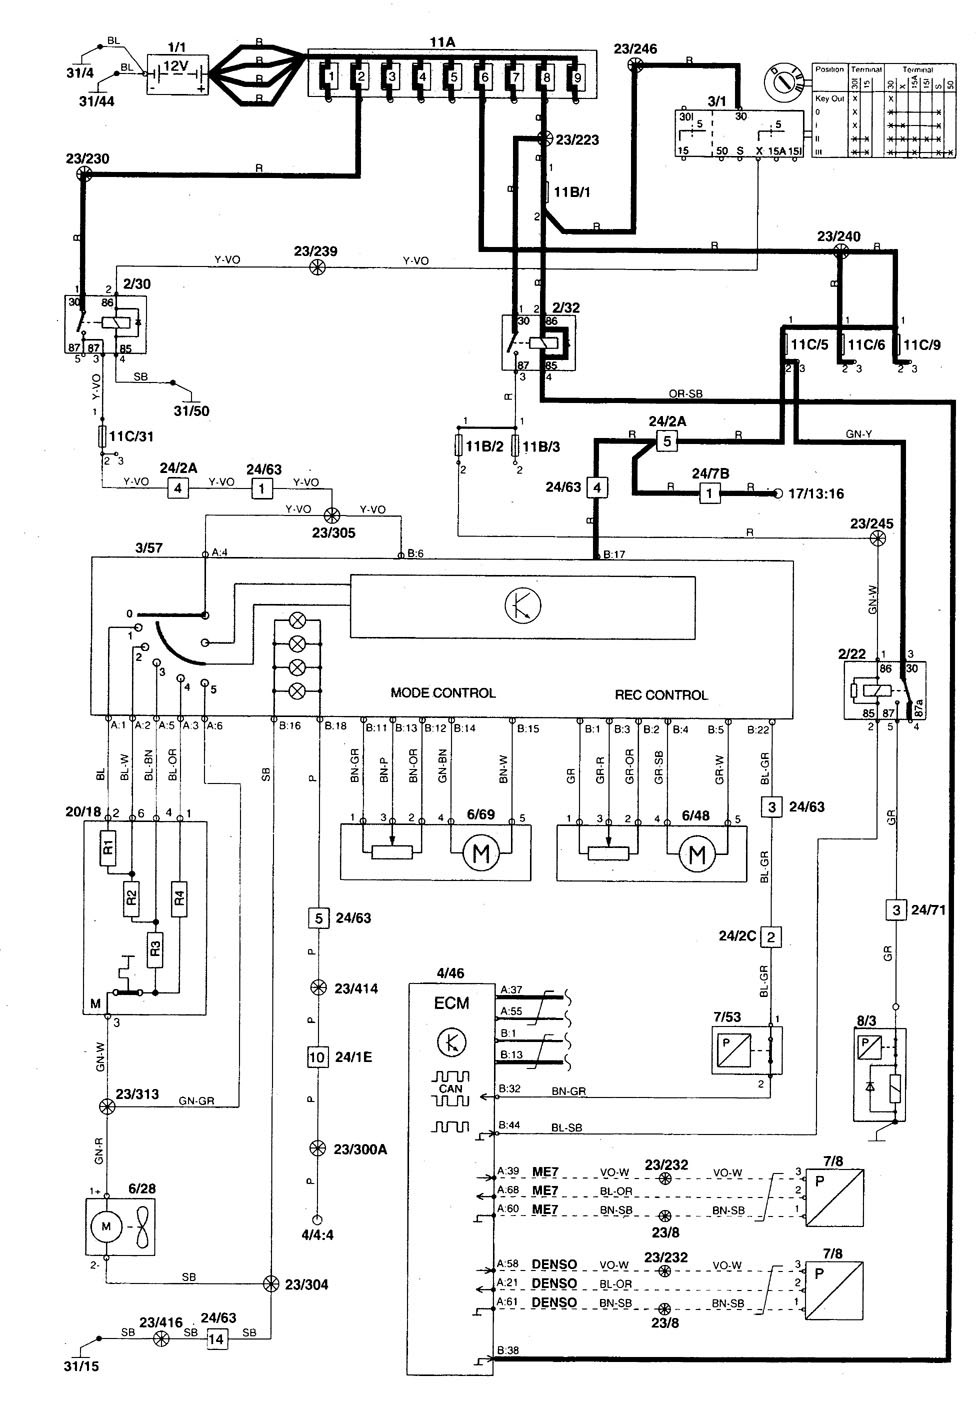 Volvo V70 1998 1999 Wiring Diagrams Hvac Controls Carknowledge C70 Diagram Part 2